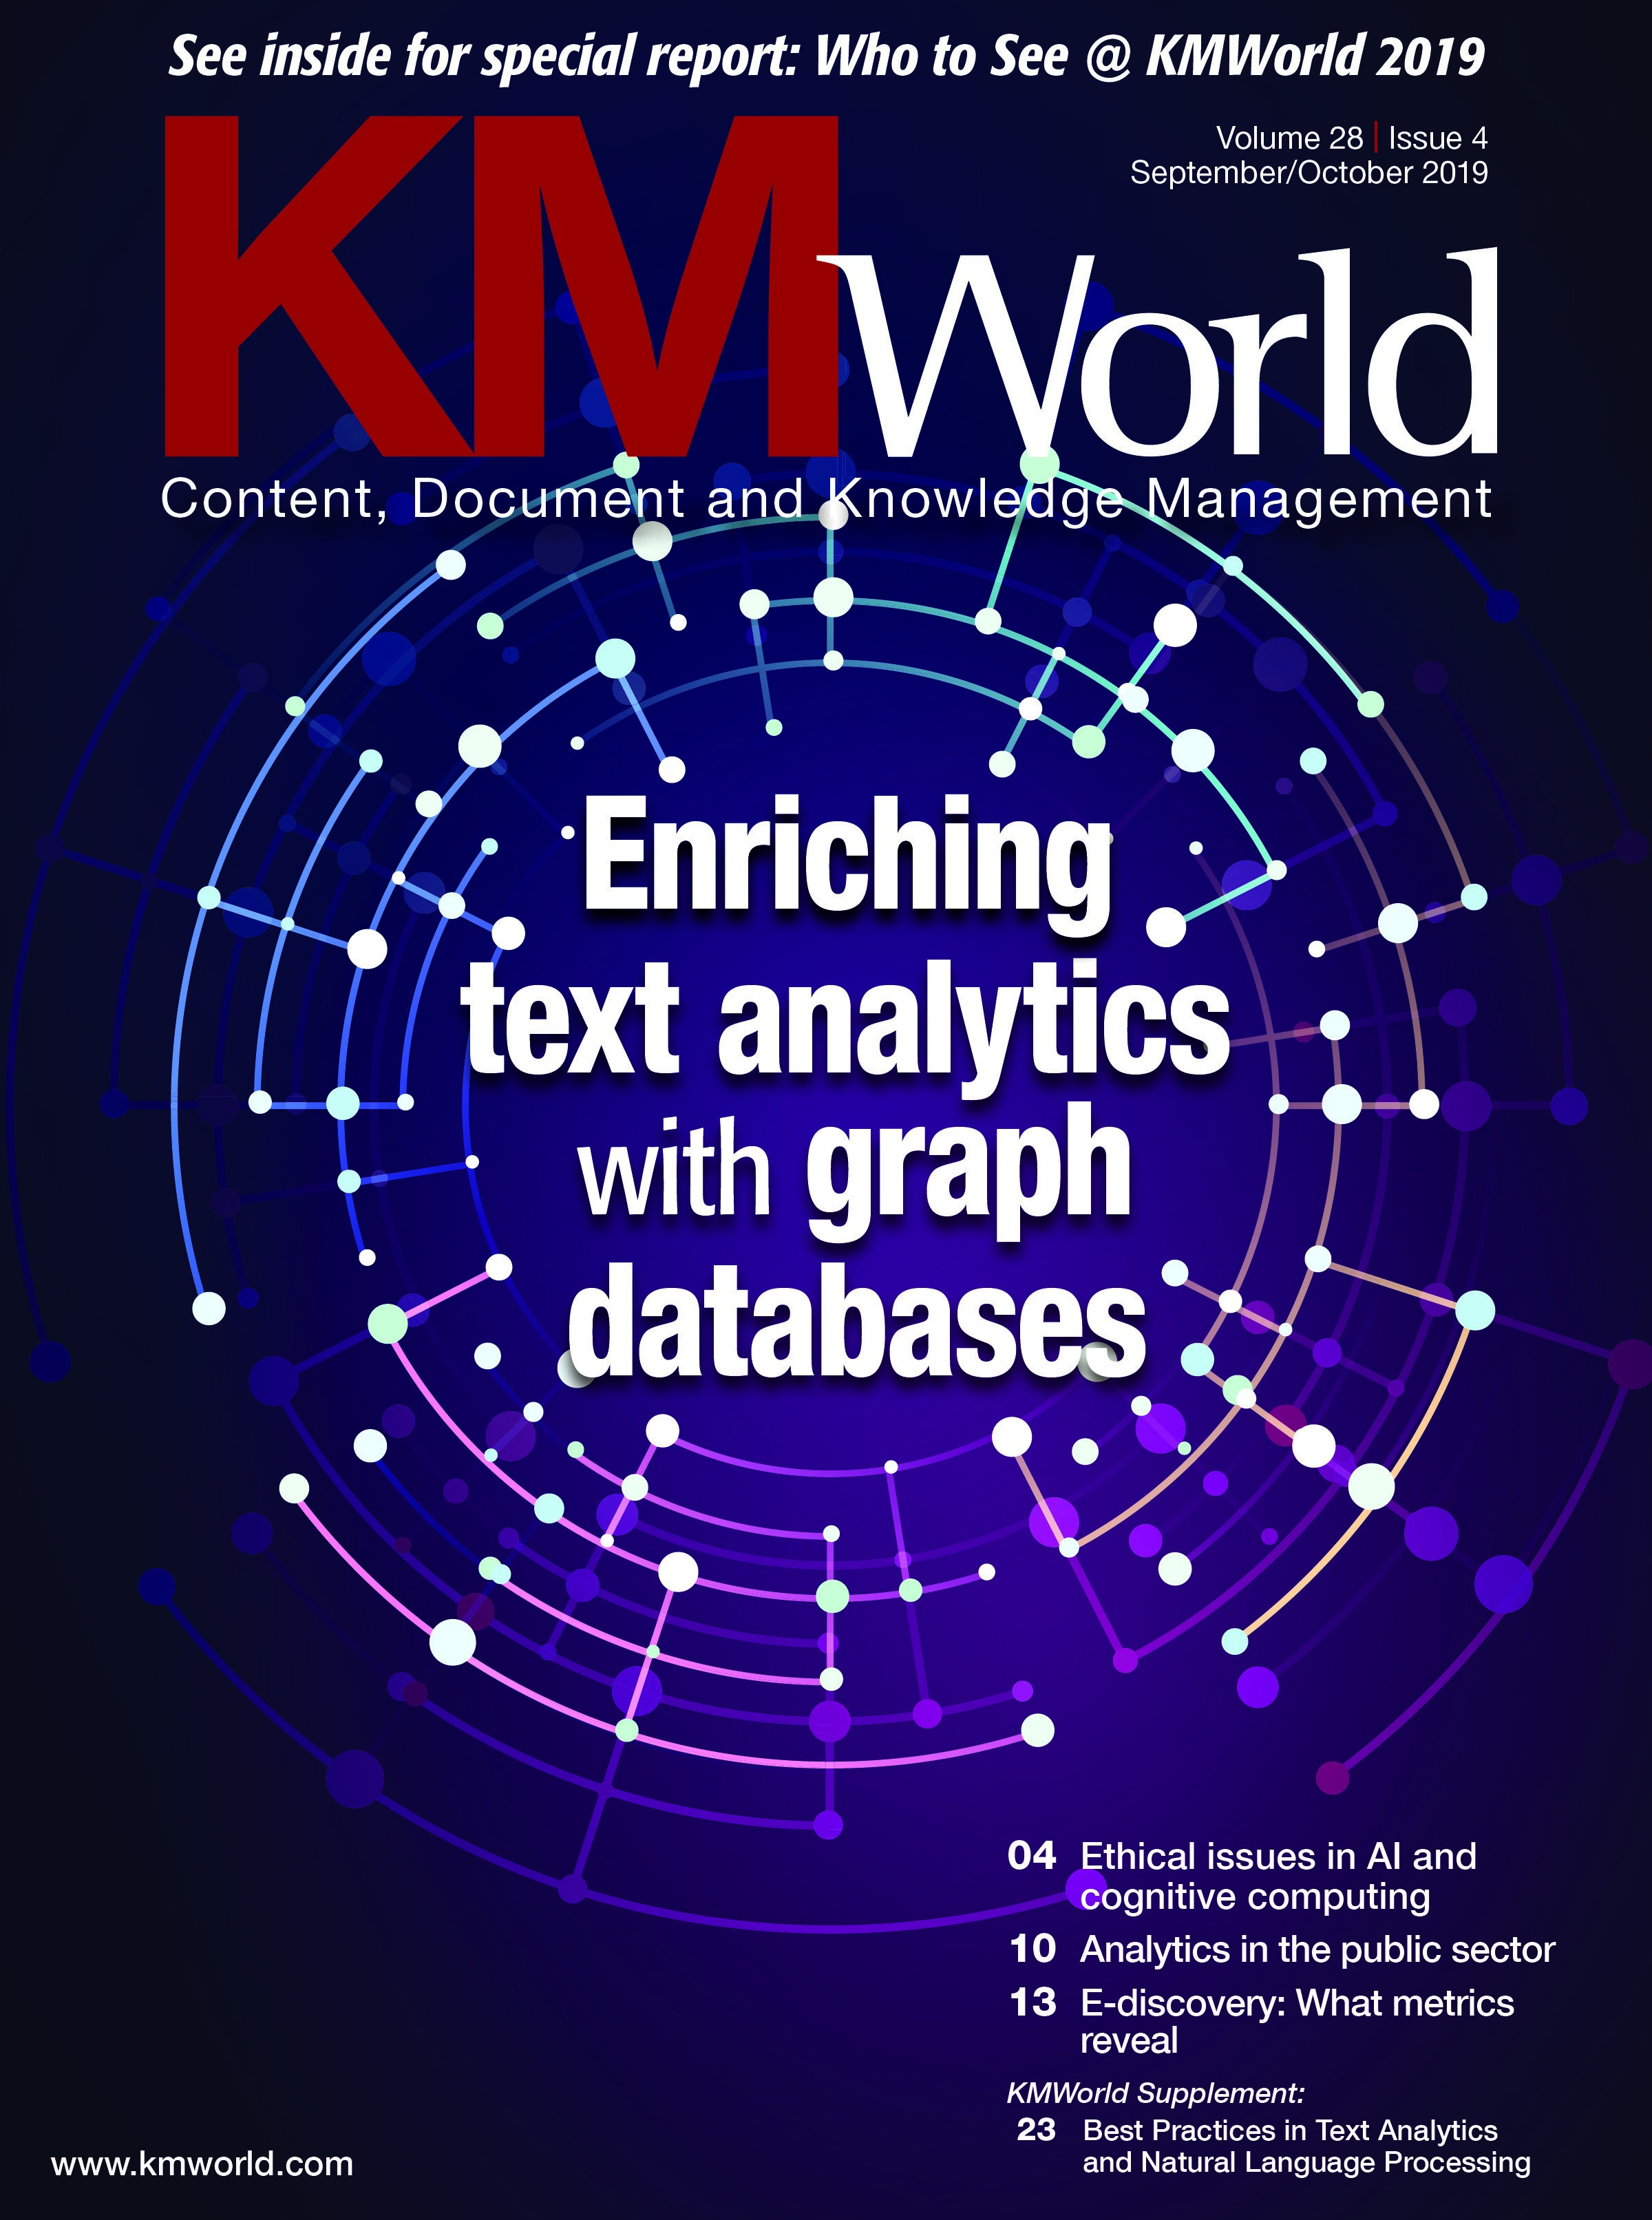 KMWorld interviews CEO of Semantic Web Company